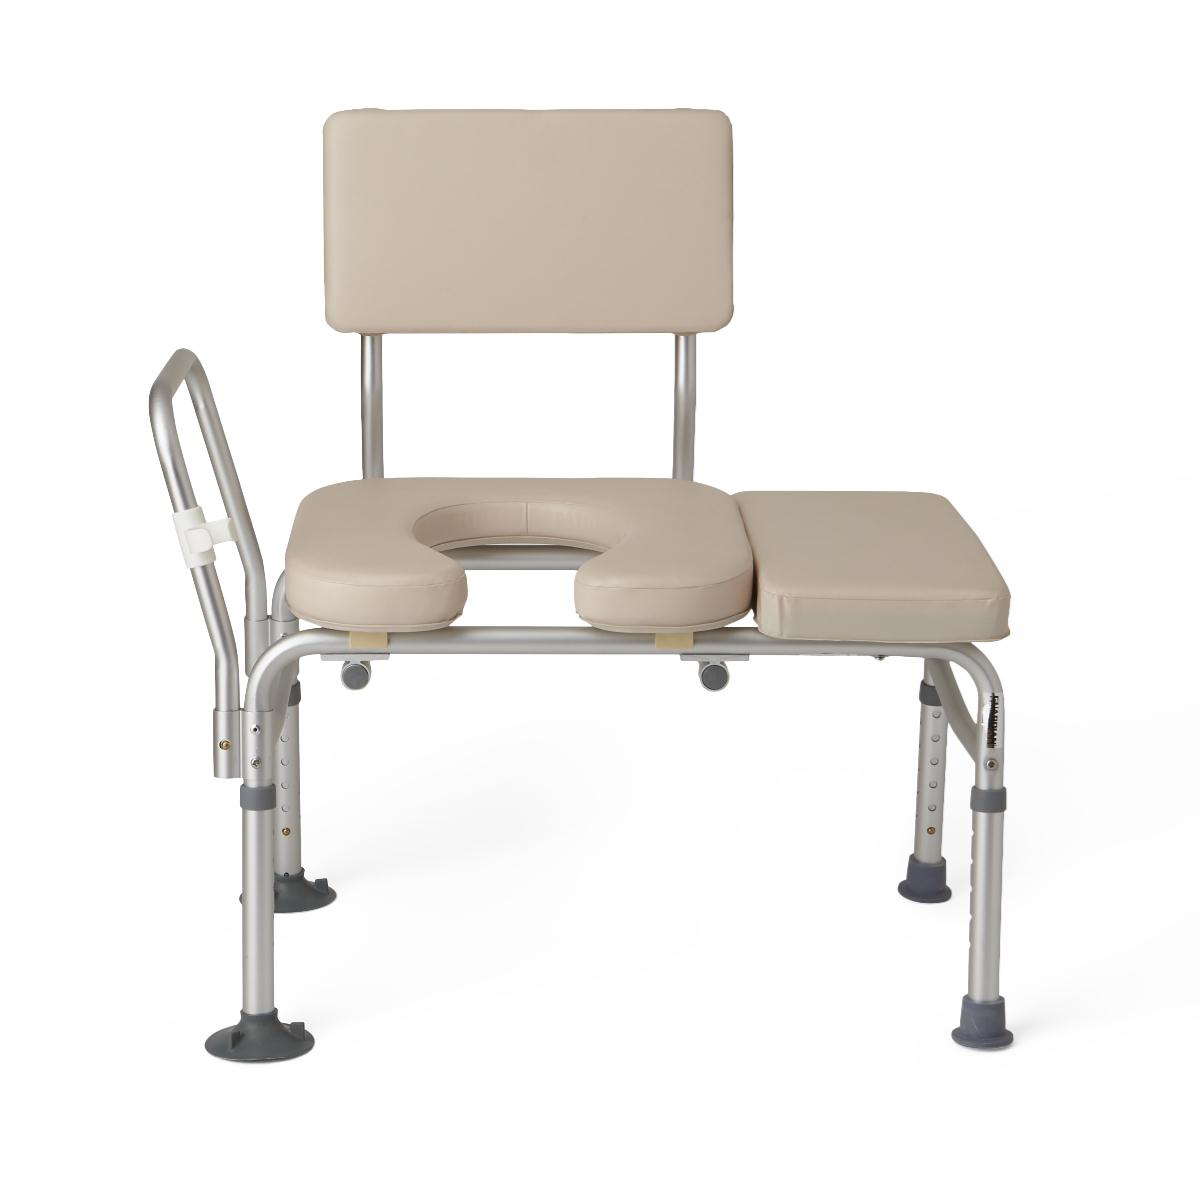 Transfer Chair For Shower Medline Padded Transfer Bench With Commode Access Abilities